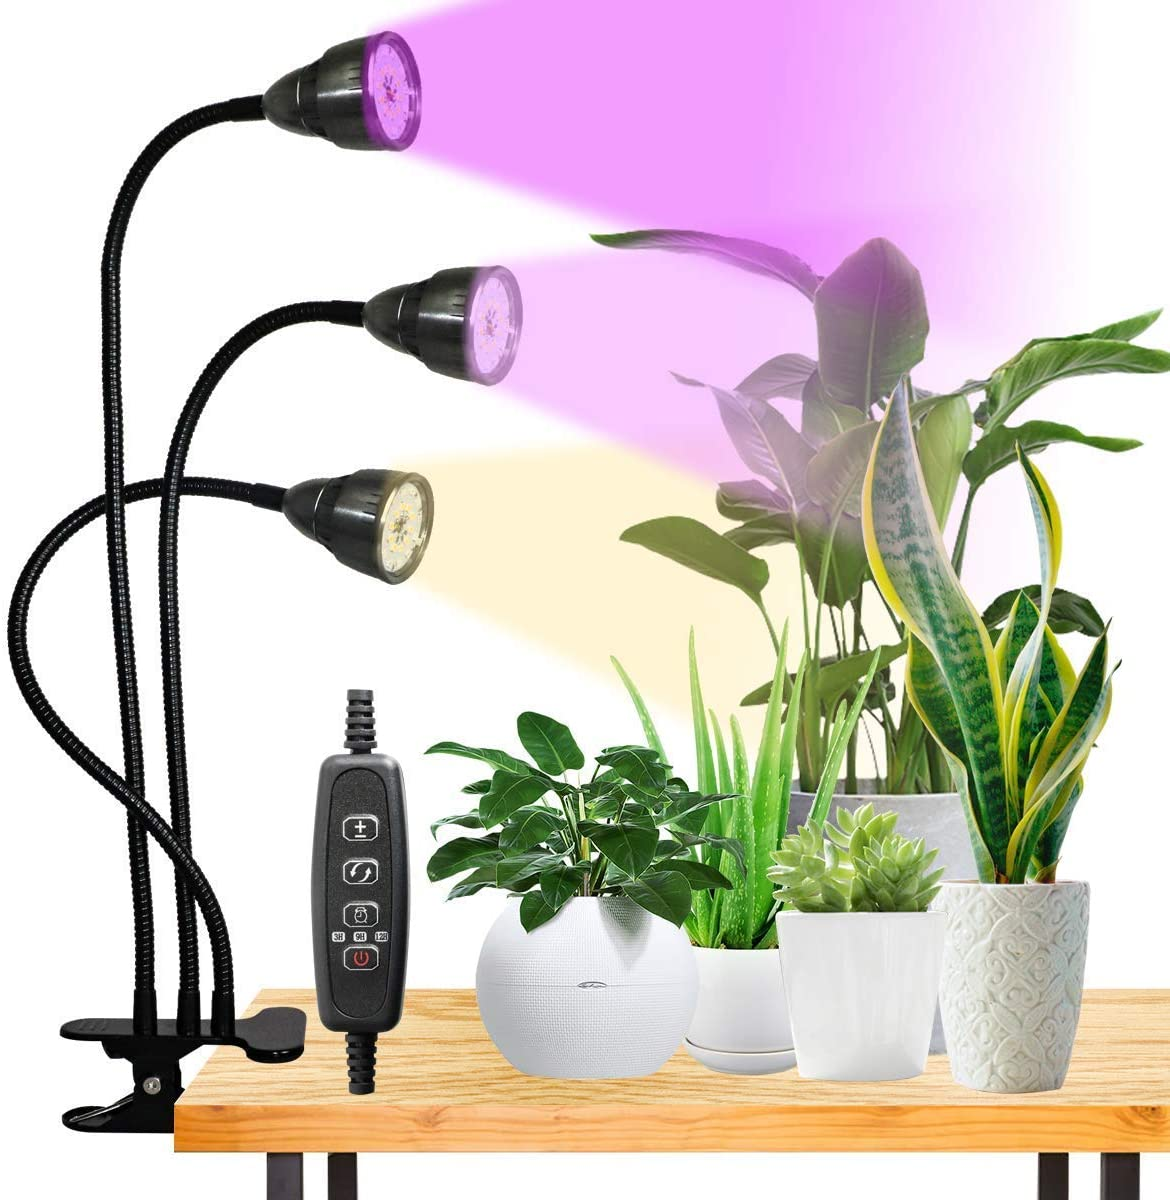 LED Grow Light,75W Full Spectrum Tri-Head Desk Plant Light